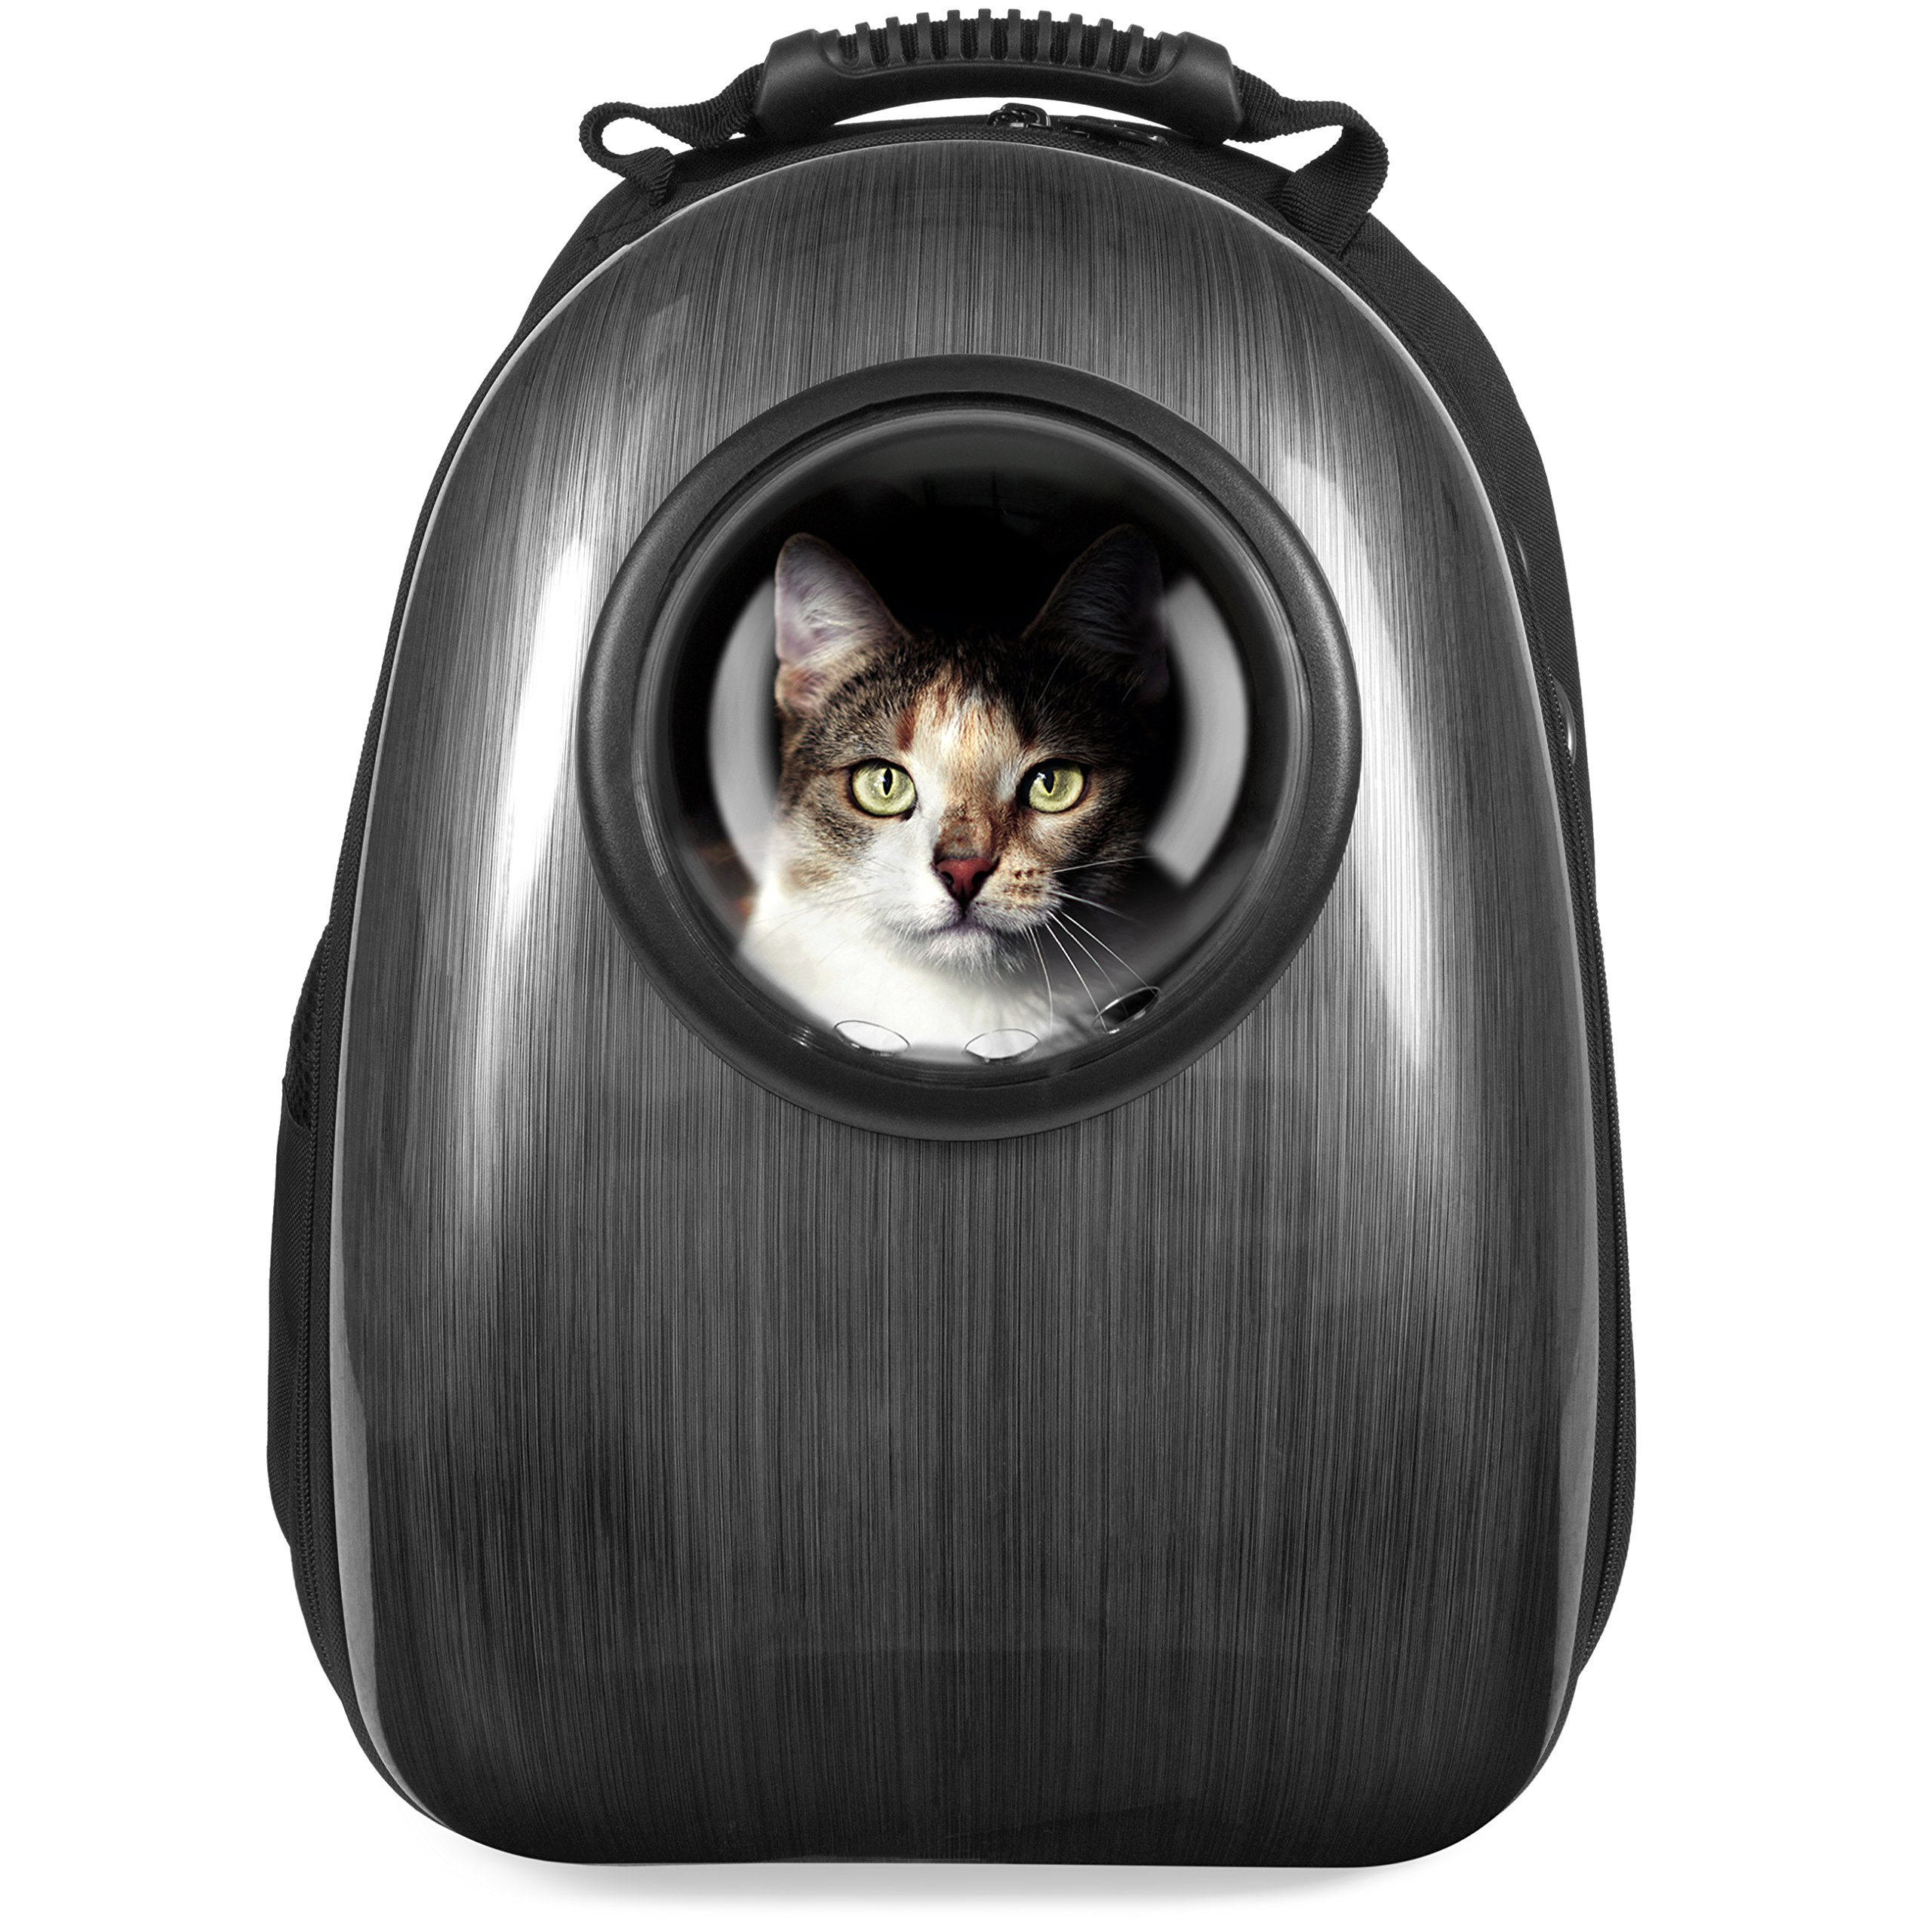 Best Choice Products Pet Carrier Space Capsule Backpack, Bubble Window Lightweight Padded Traveler for Cats, Dogs, Small Animals w/Breathable Air Holes - Charcoal Gray